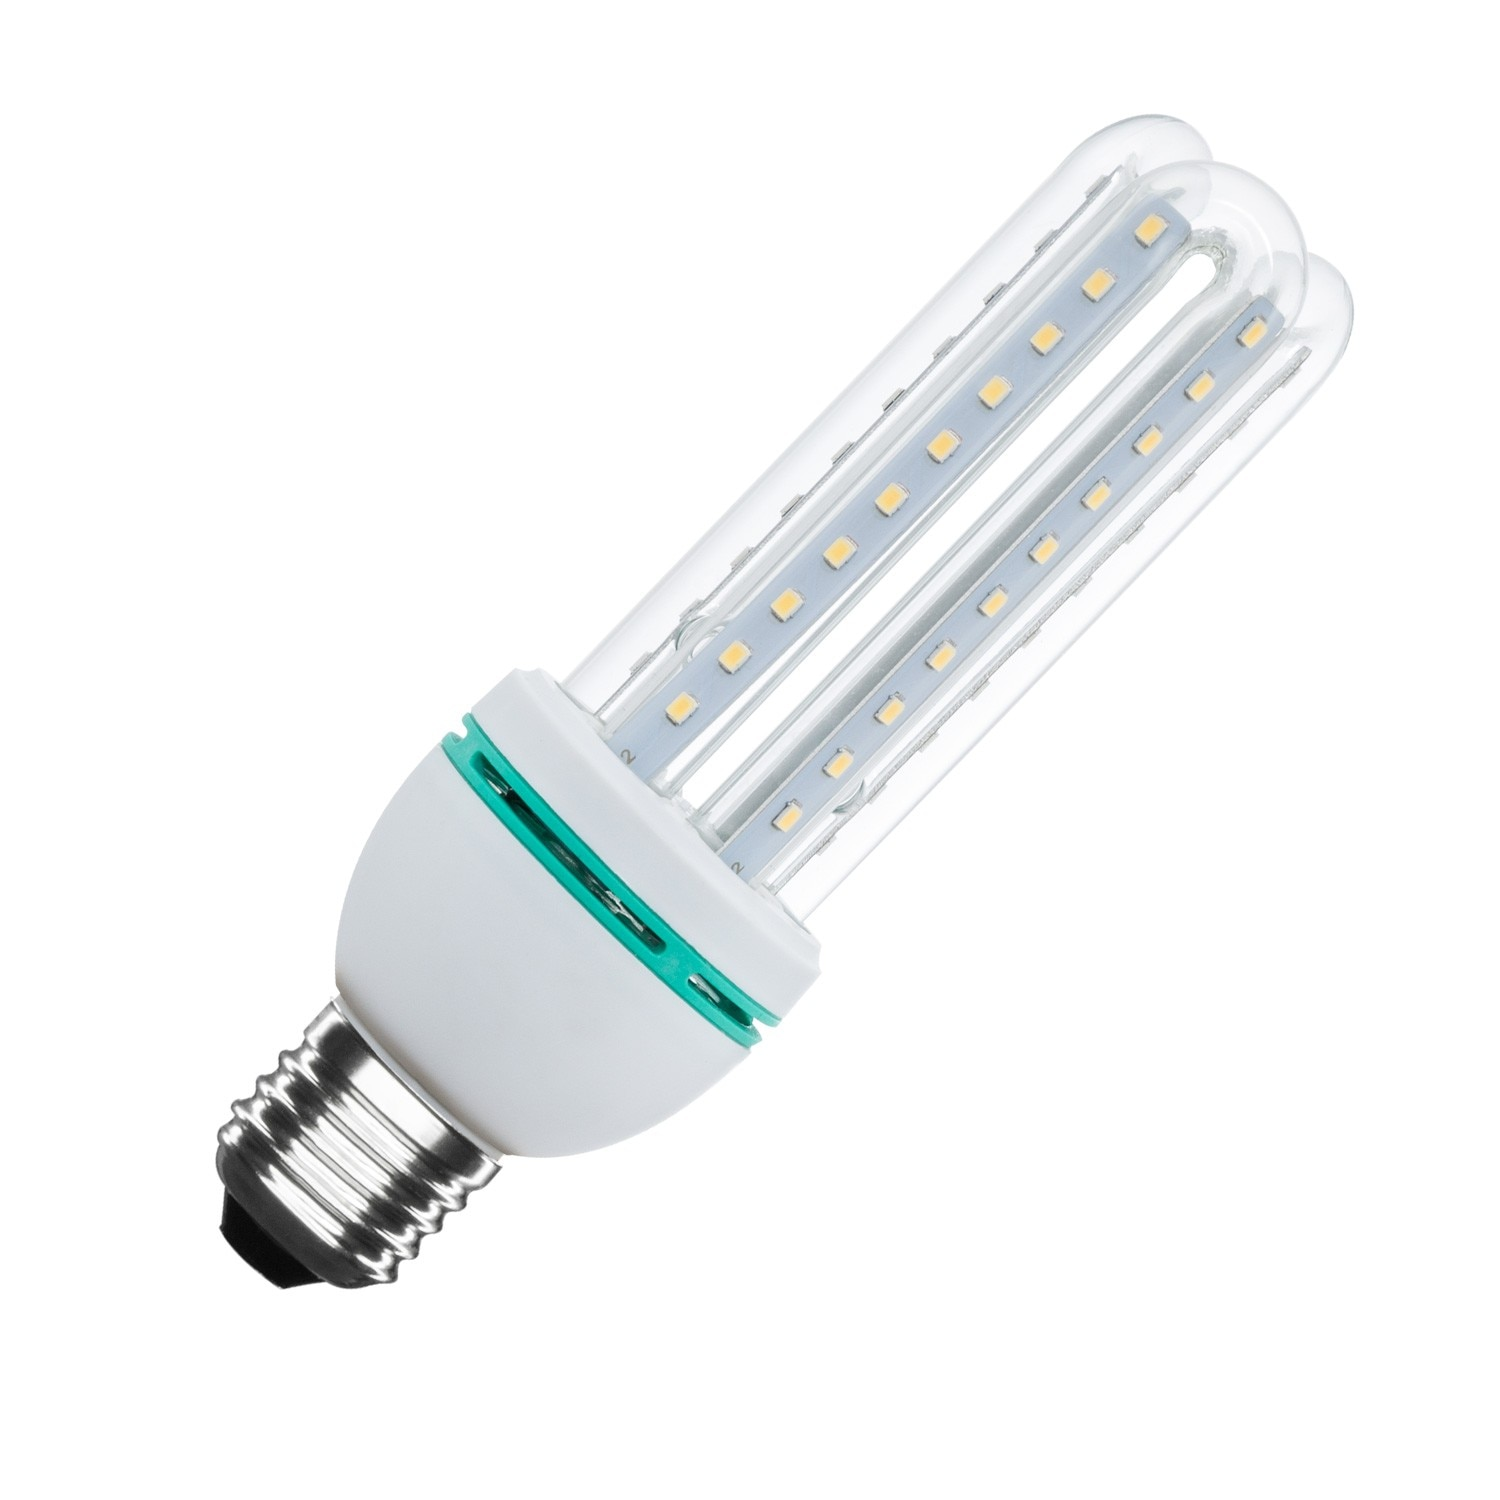 Lampadina led cfl e27 12w ledkia for Lampade e27 a led